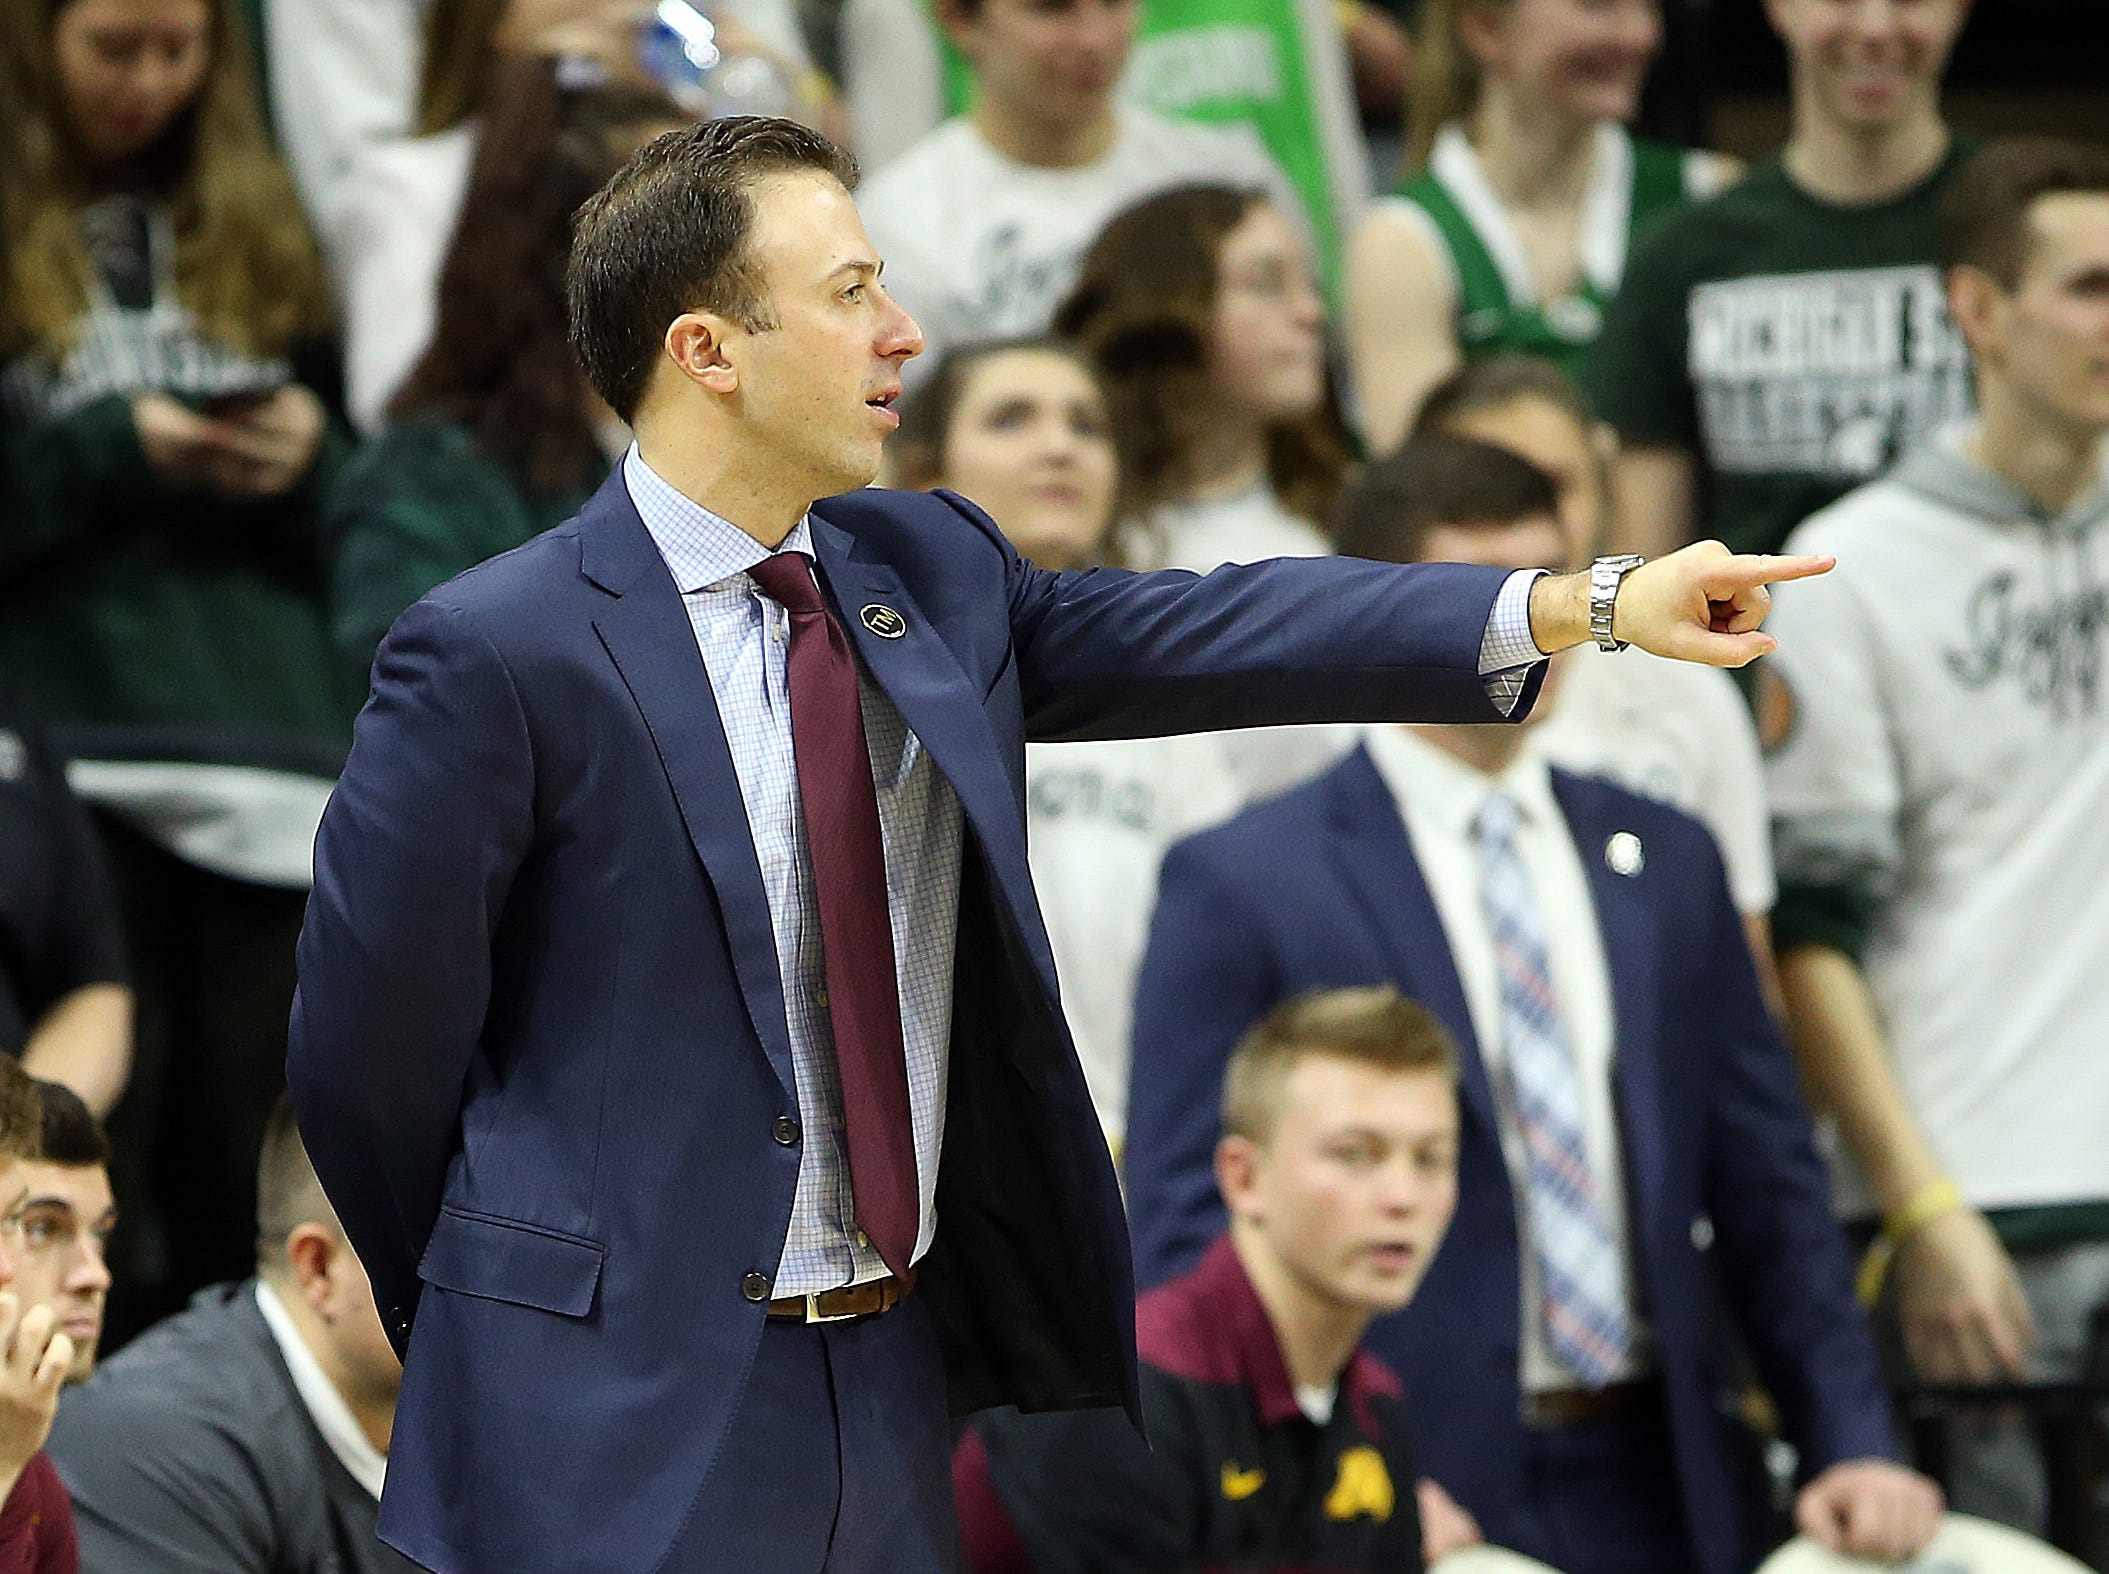 Feb 9, 2019; East Lansing, MI, USA; Minnesota Golden Gophers head coach Rick Pitino reacts during the second half against the Michigan State Spartans at the Breslin Center. Mandatory Credit: Mike Carter-USA TODAY Sports